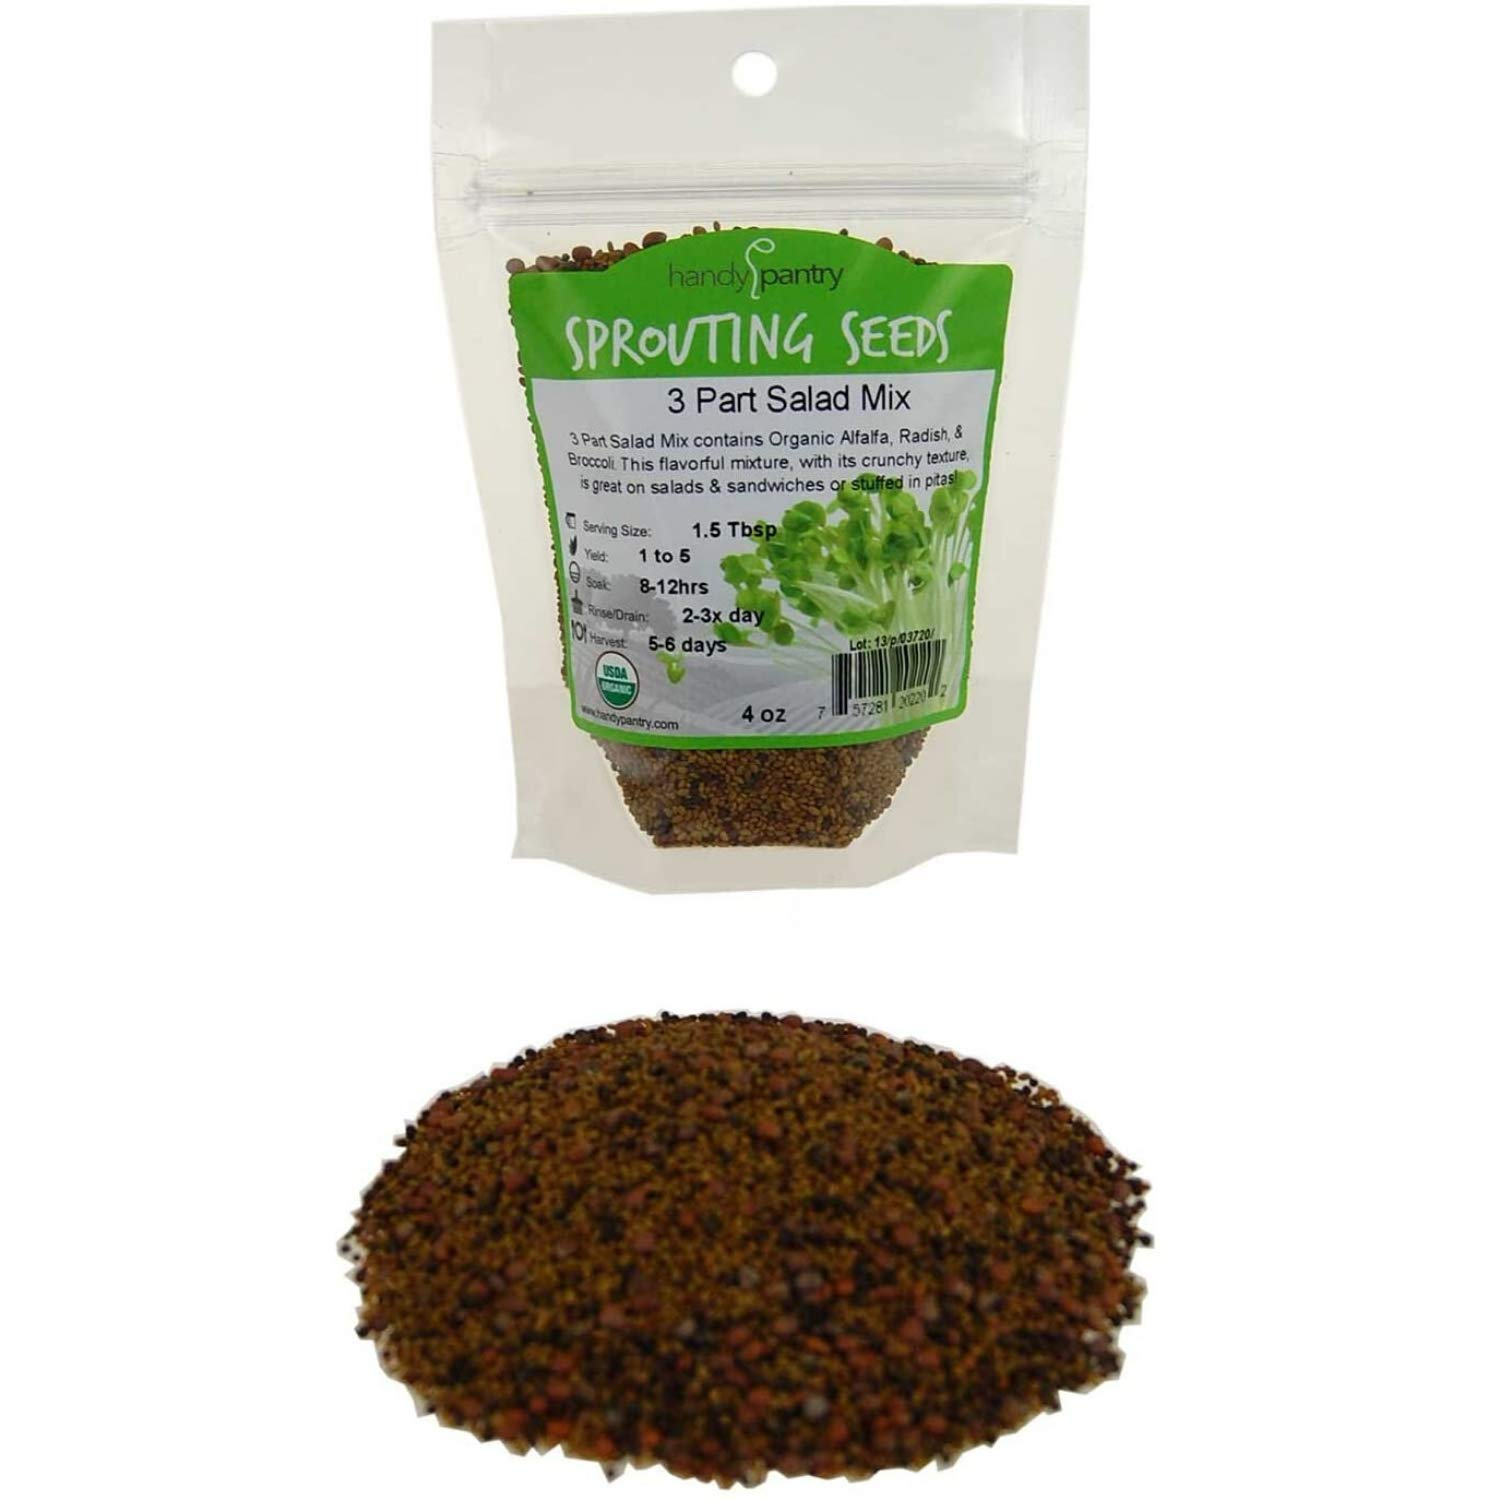 3 Part Salad Sprout Seed Mix - 4 Oz. - Handy Pantry Brand - Organic Sprouting Seeds: Radish, Broccoli & Alfalfa: Cooking, Food Storage or Delicious Salad Sprouts